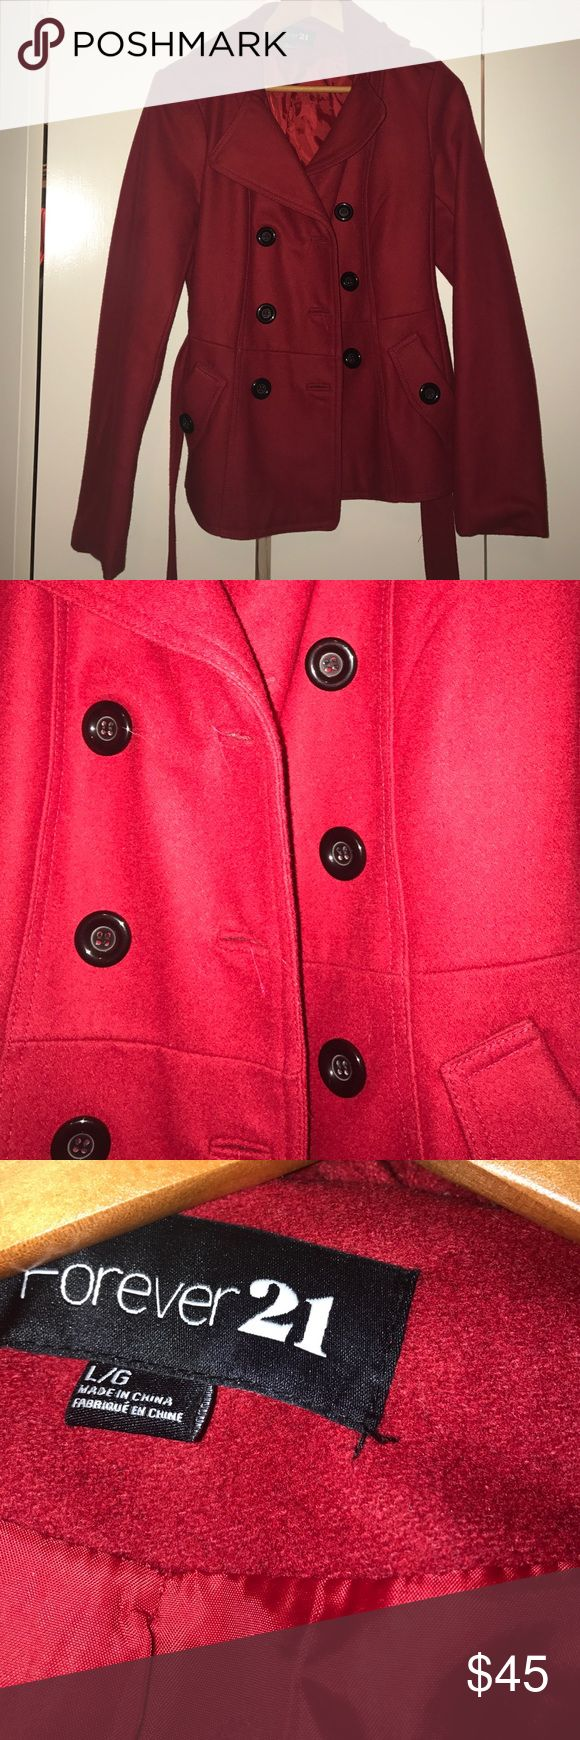 Peacoat Beautiful red peacoat. Price is firm, no low ball offers. This coat is so beautiful and I love it too much to let it go for cheap. Forever 21 Jackets & Coats Pea Coats